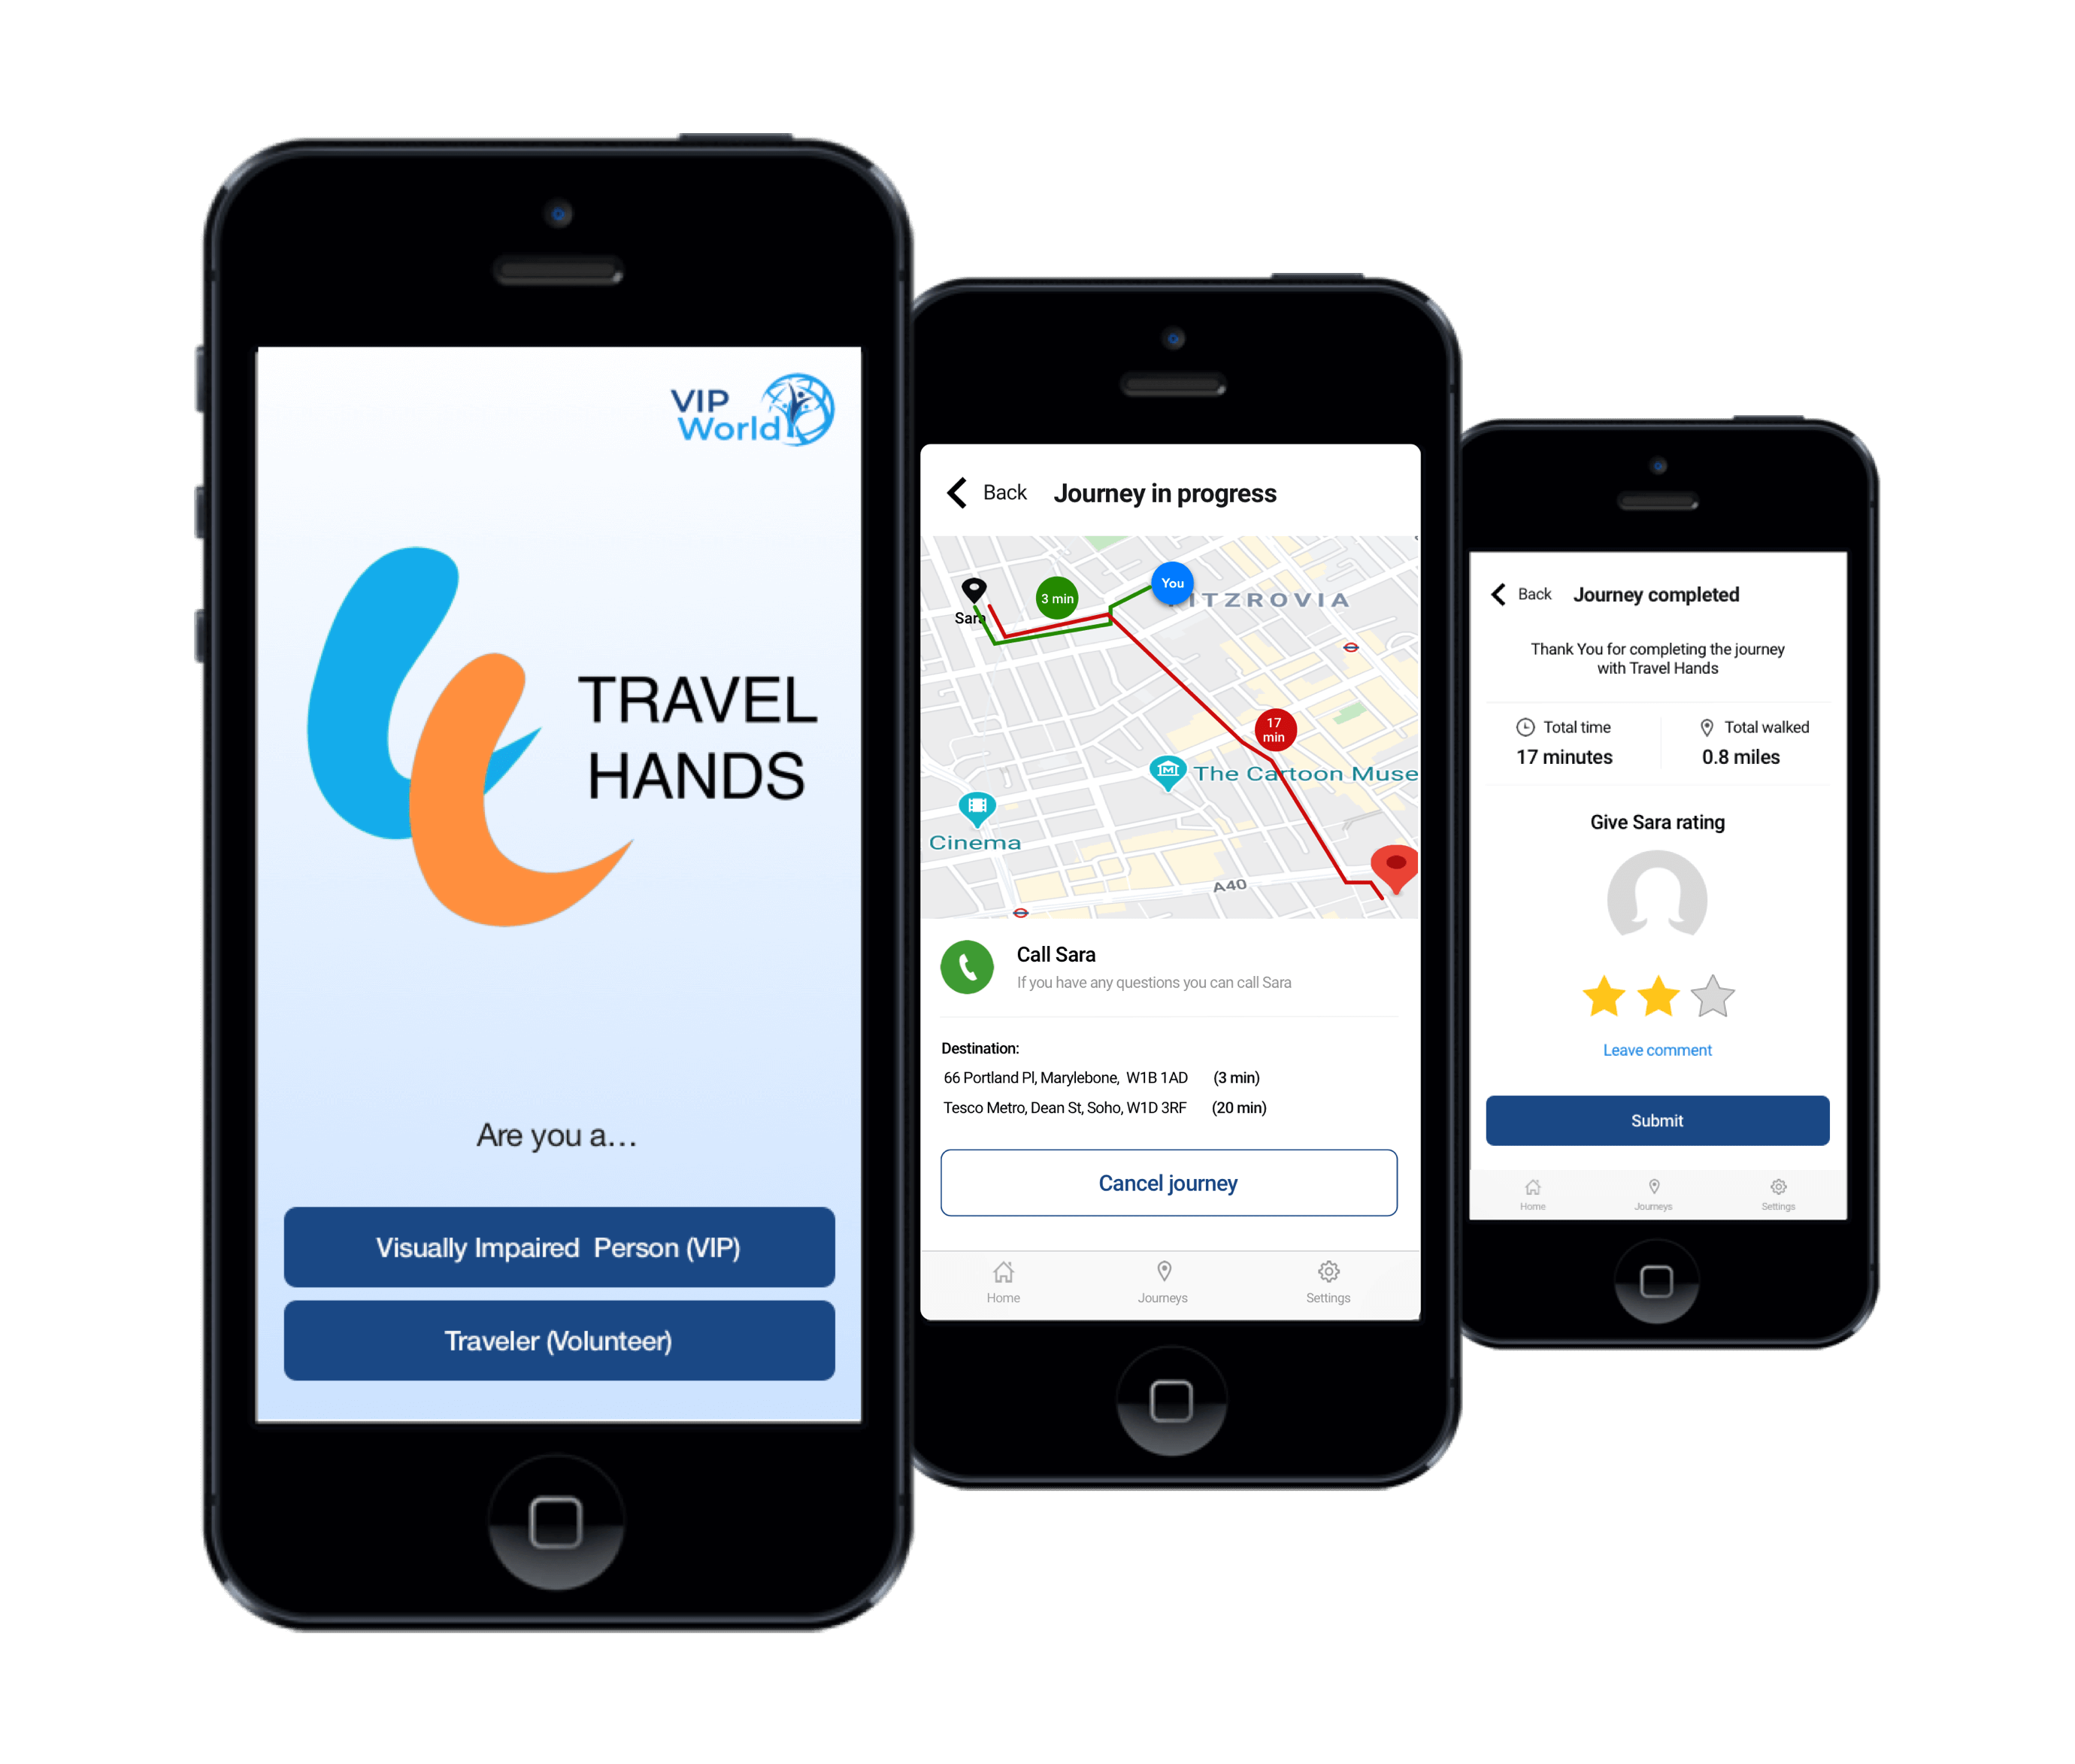 Three screens of the travel hands app